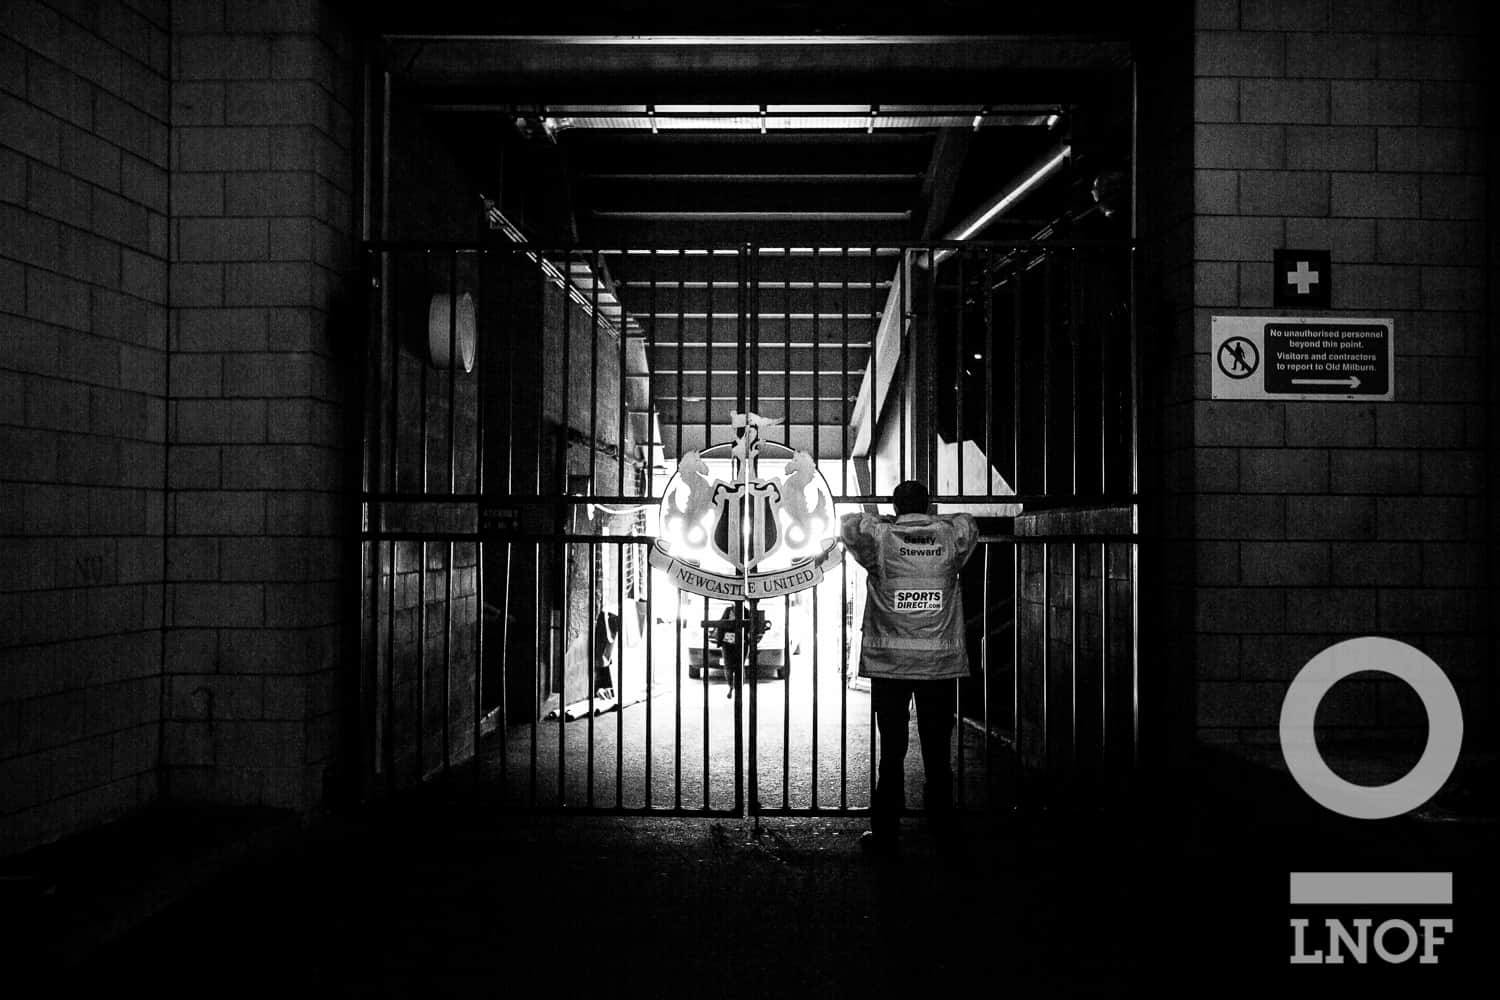 The gates to St James' Park